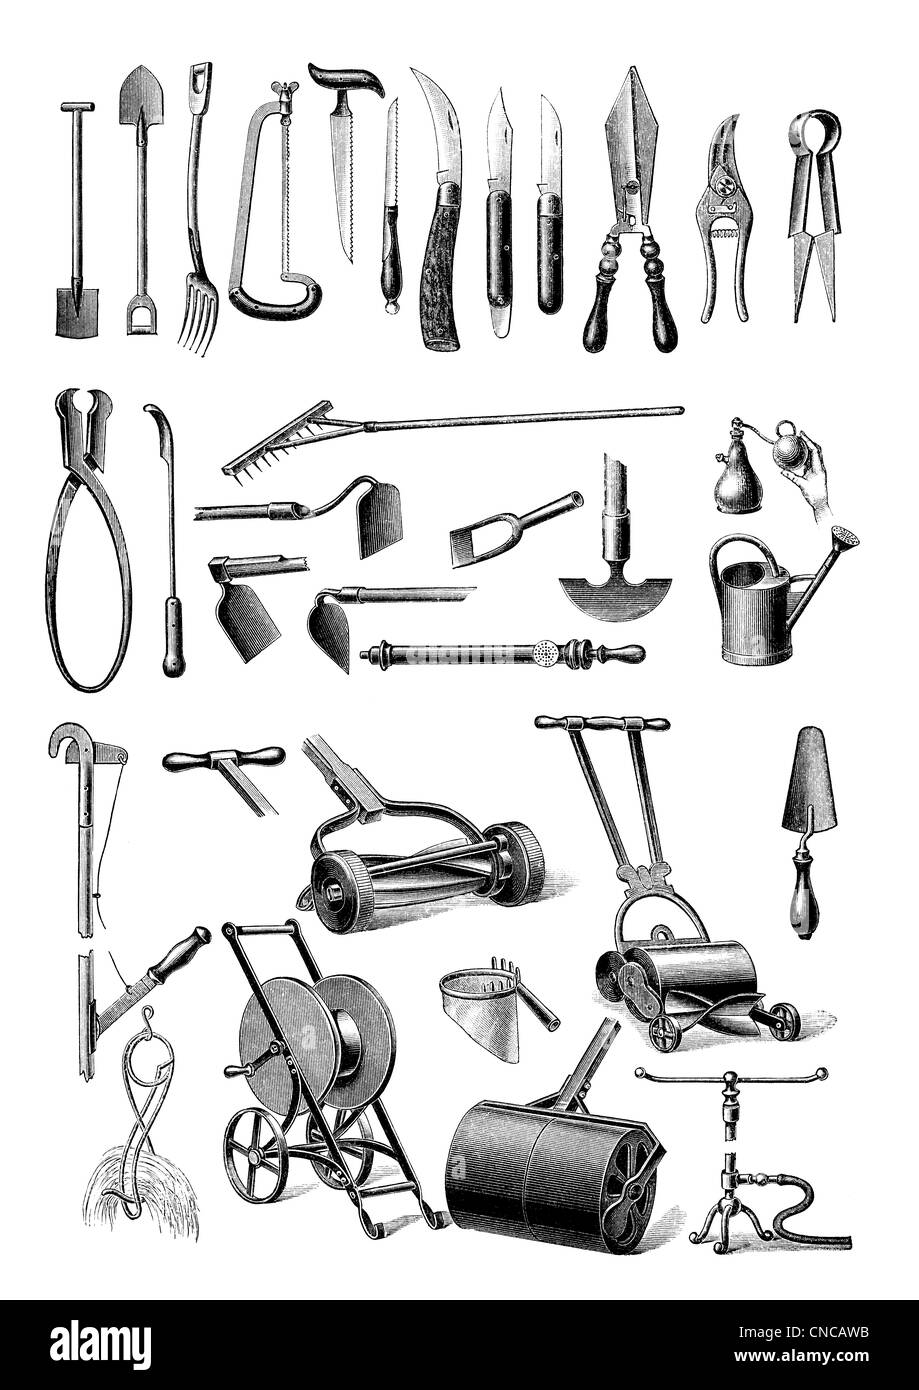 Historical illustration from the 19th Century, depiction of gardening equipment - Stock Image